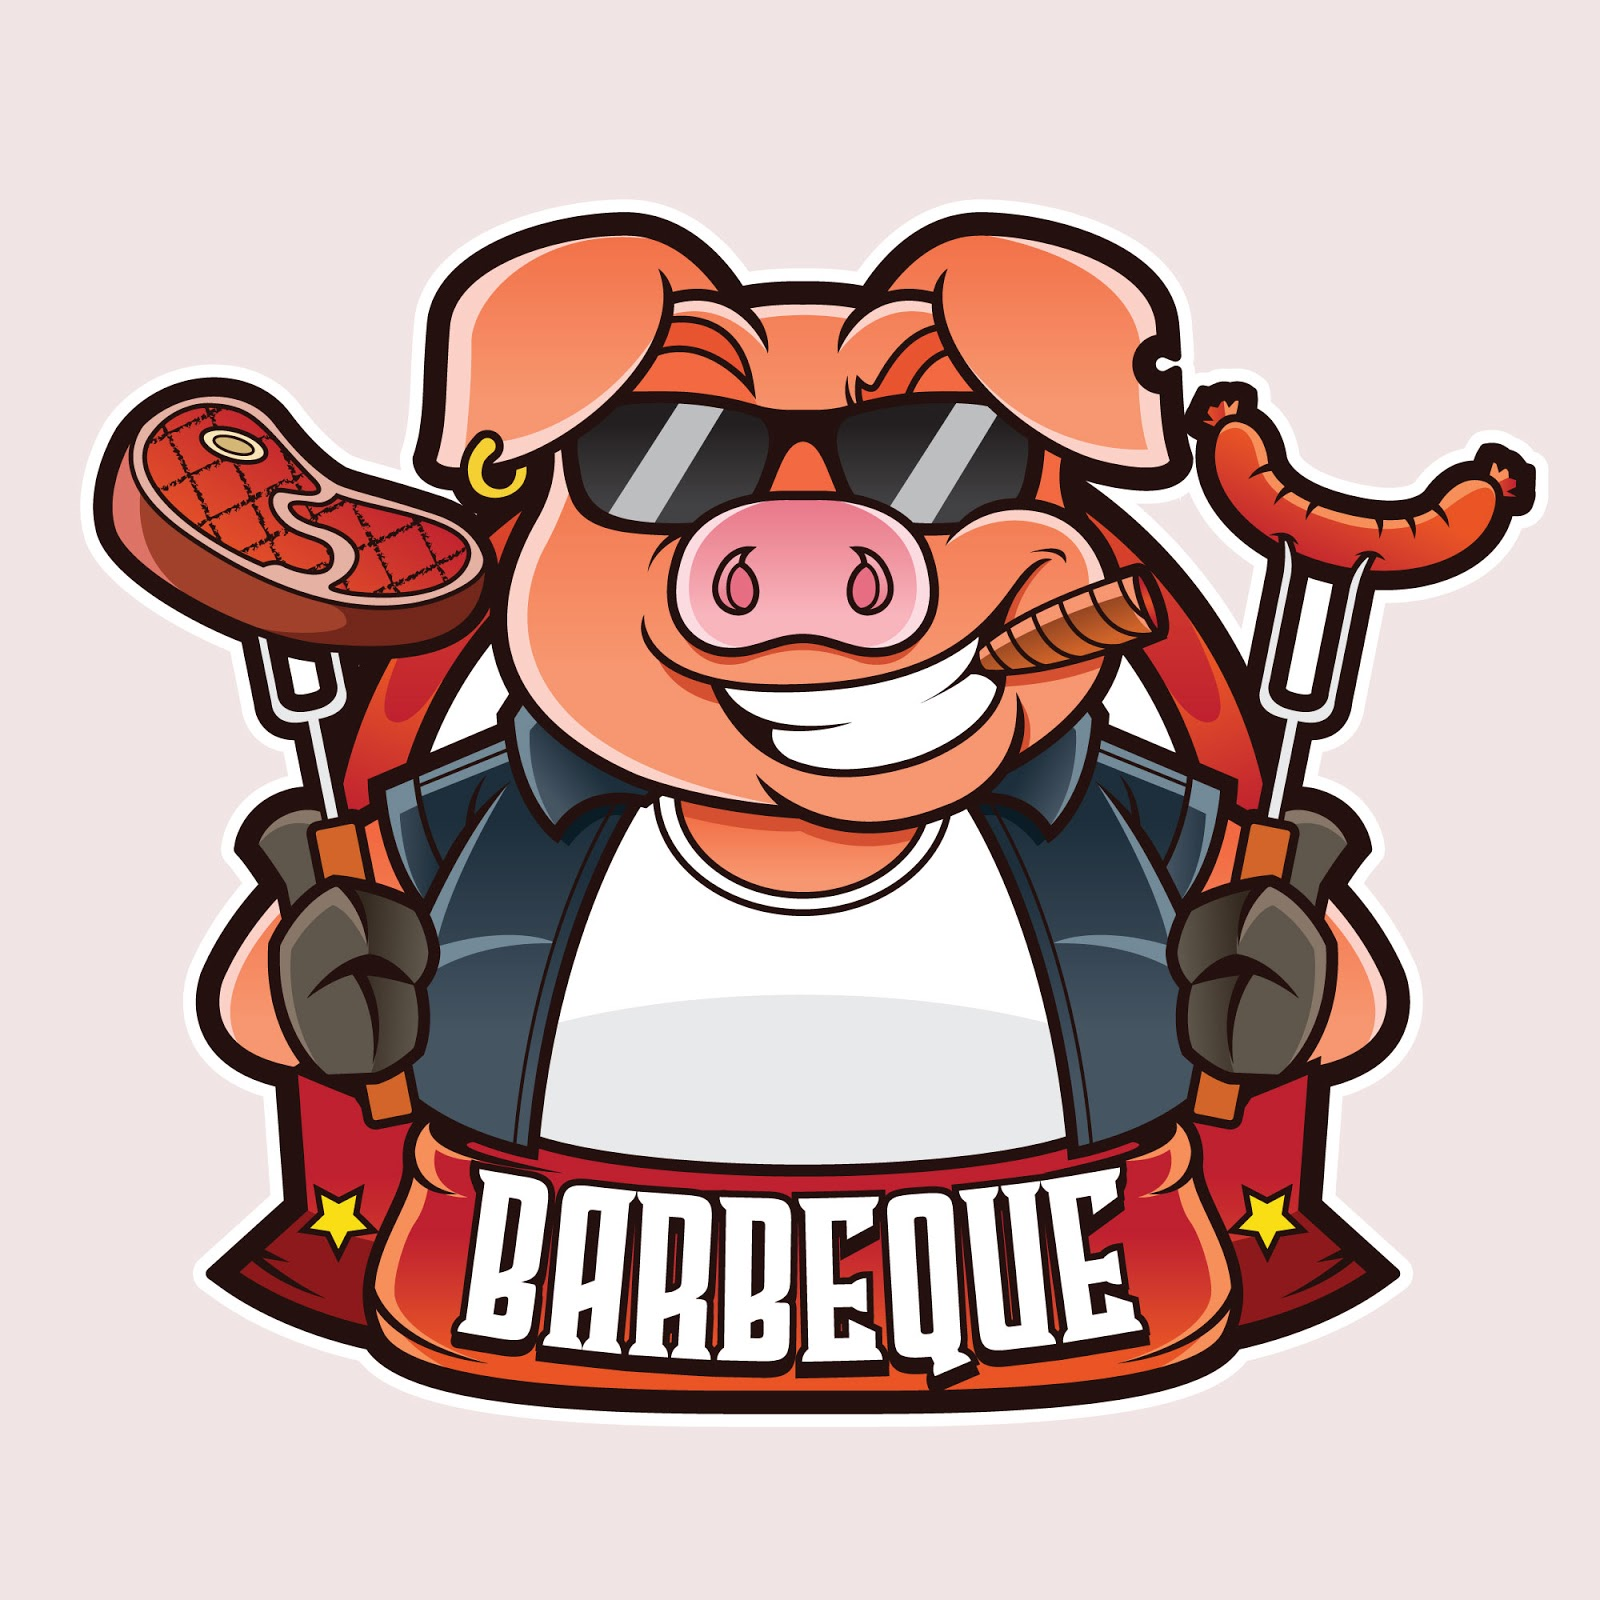 Barbeque Mascot Logo Free Download Vector CDR, AI, EPS and PNG Formats